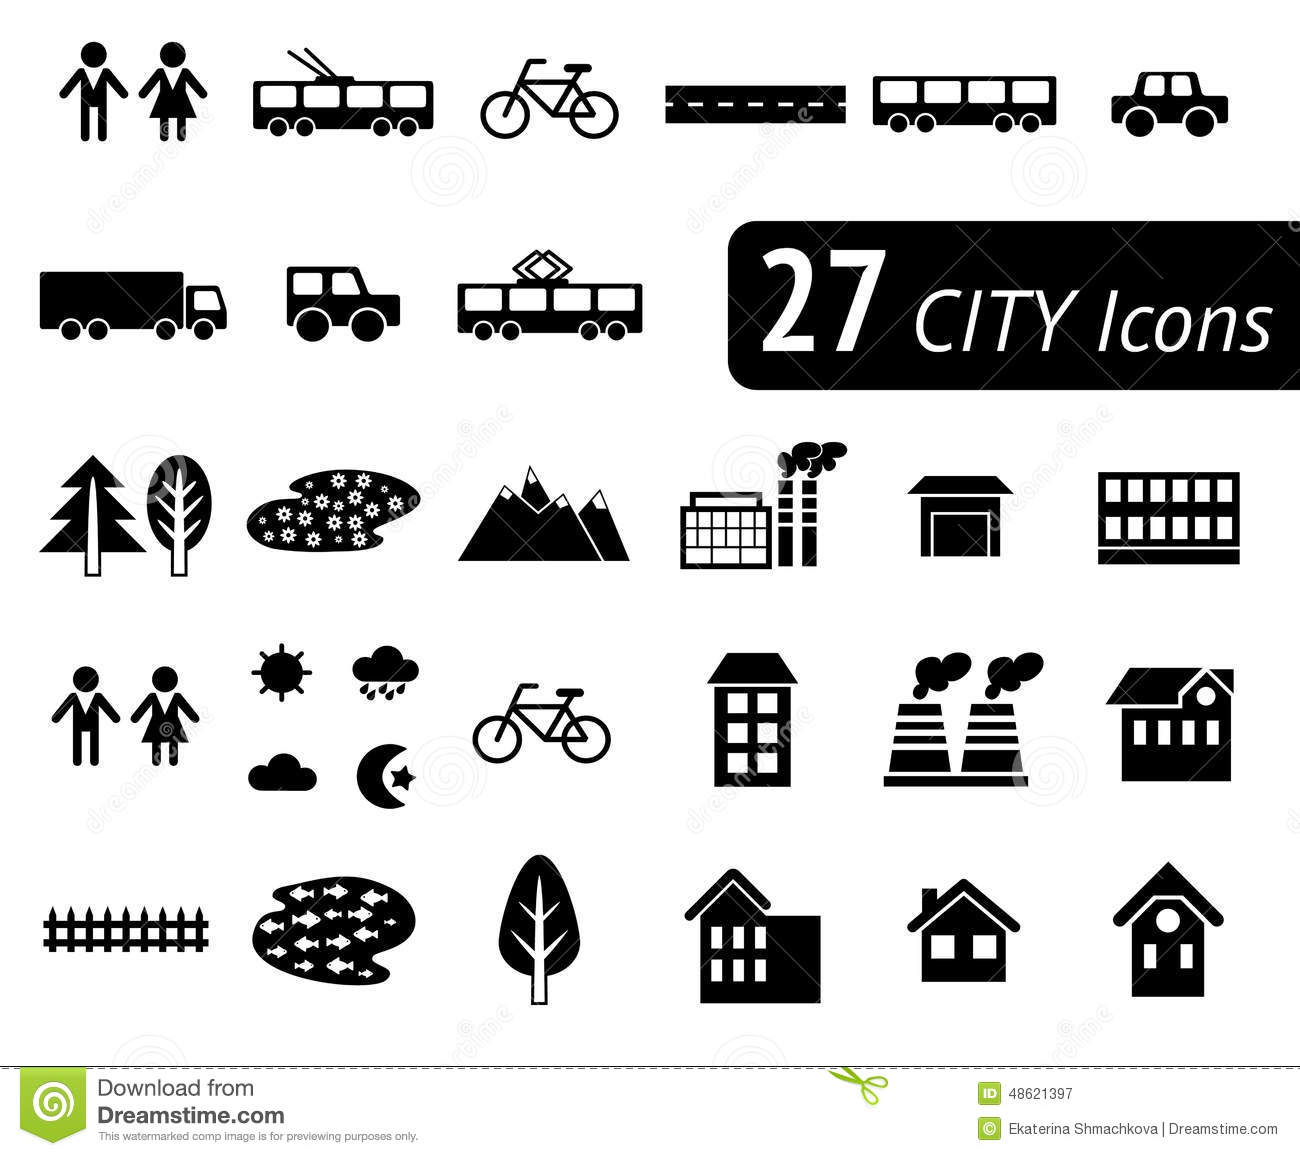 Different Monochromatic Flat City Elements For Creating Your Own Map